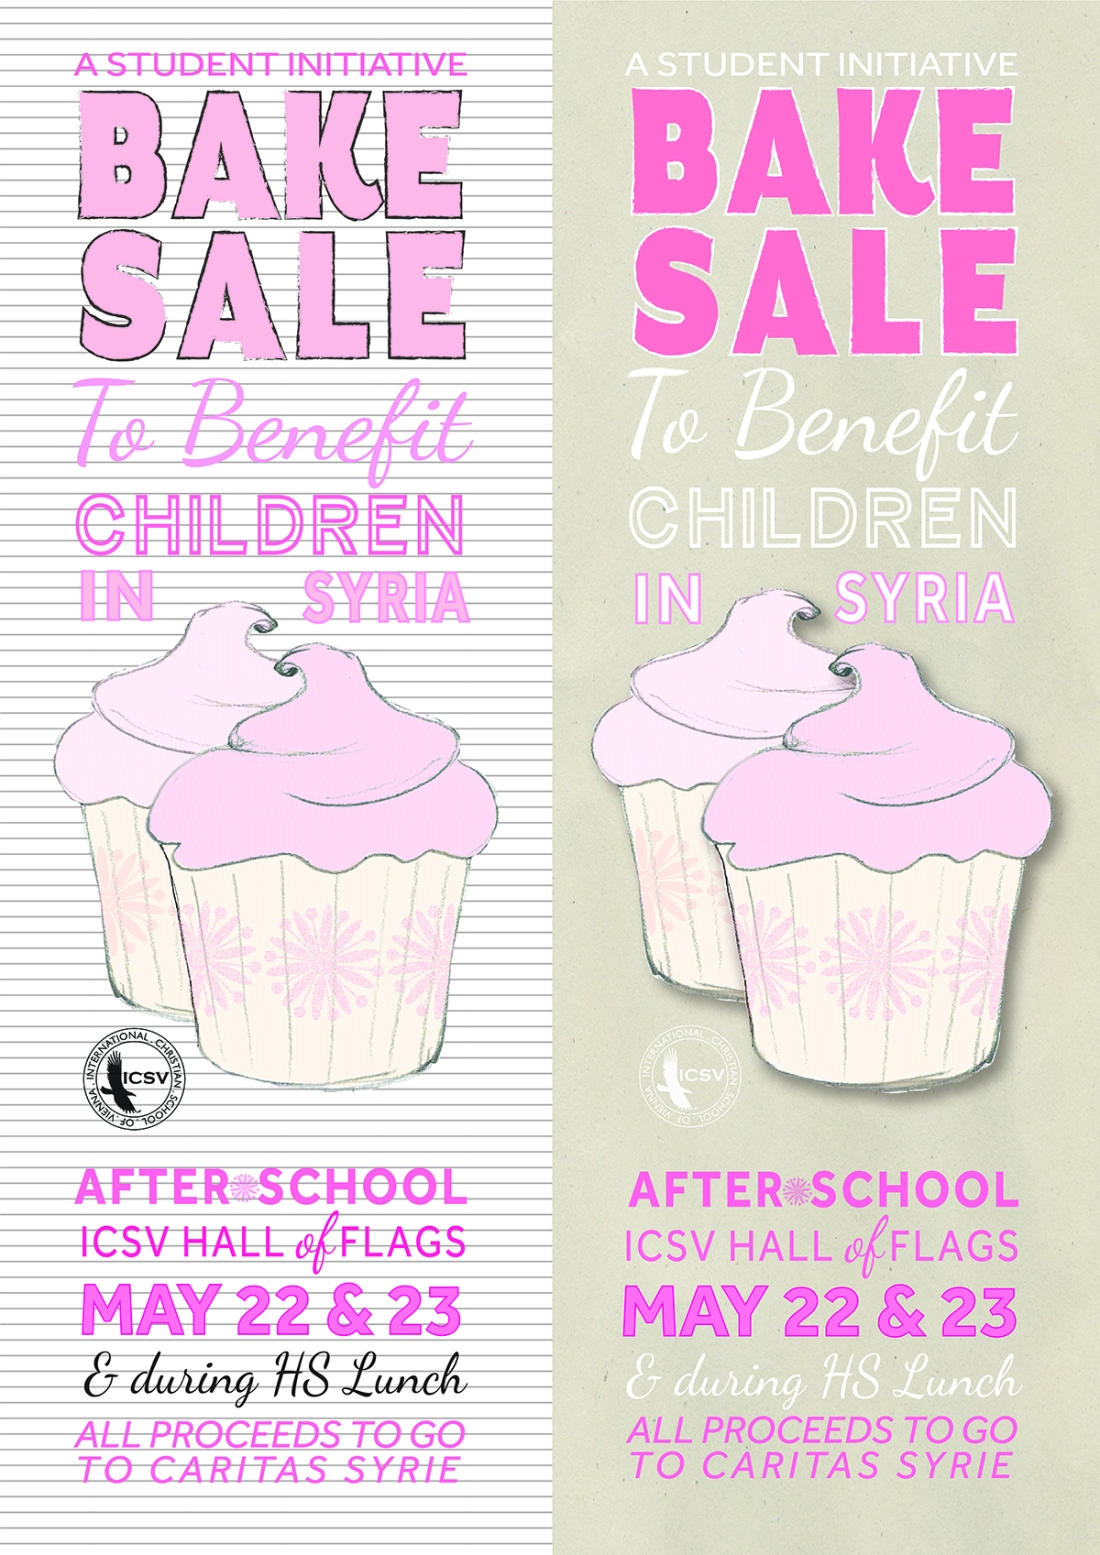 student initiated bake for children in syria versions of print